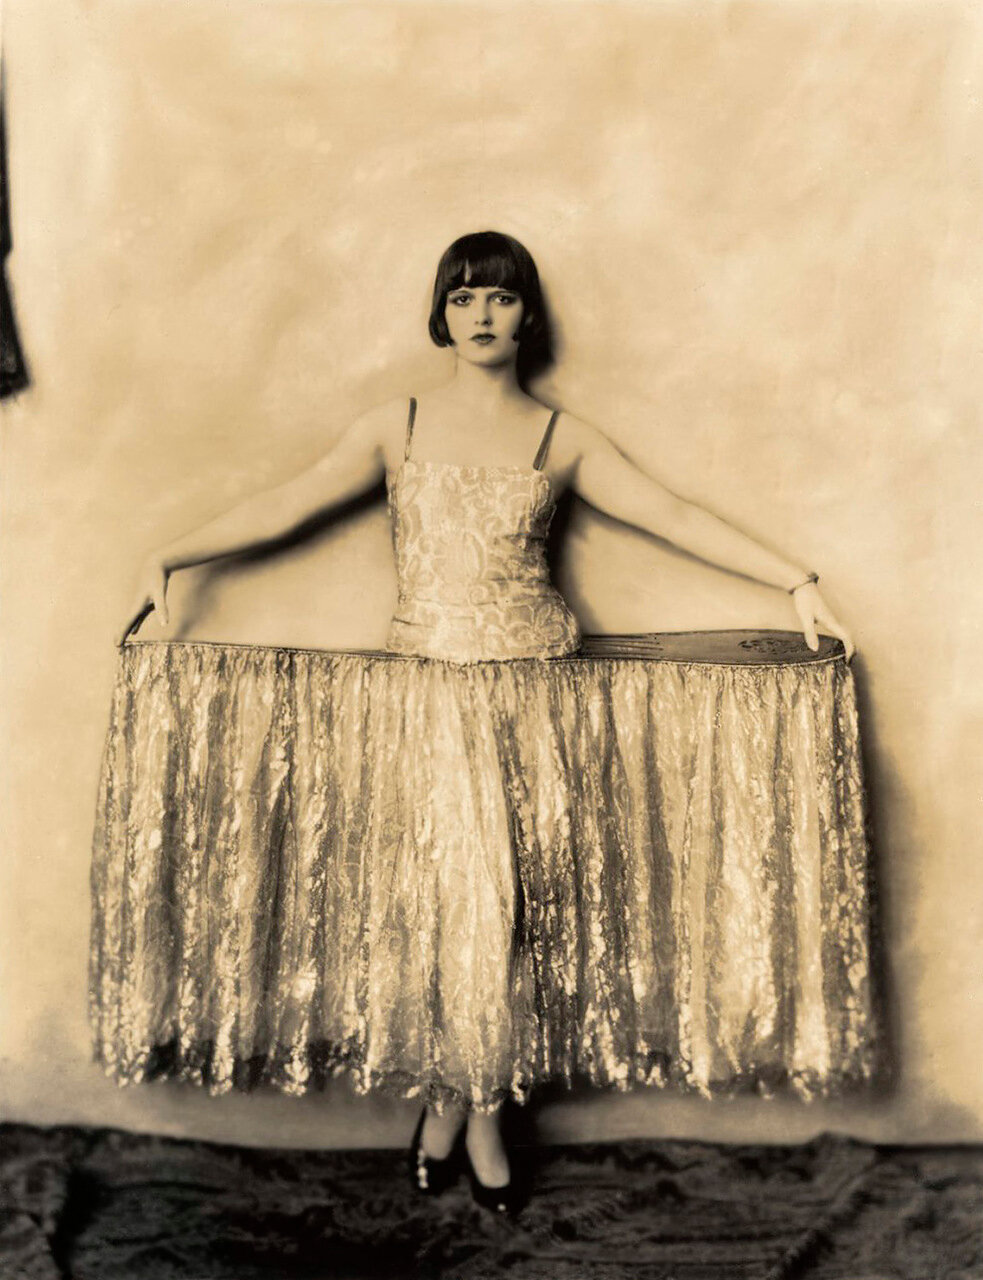 Louise Brooks - Ziegfeld - c. 1925 - Showgirl Costume With Panniers - By Alfred Cheney Johnston.